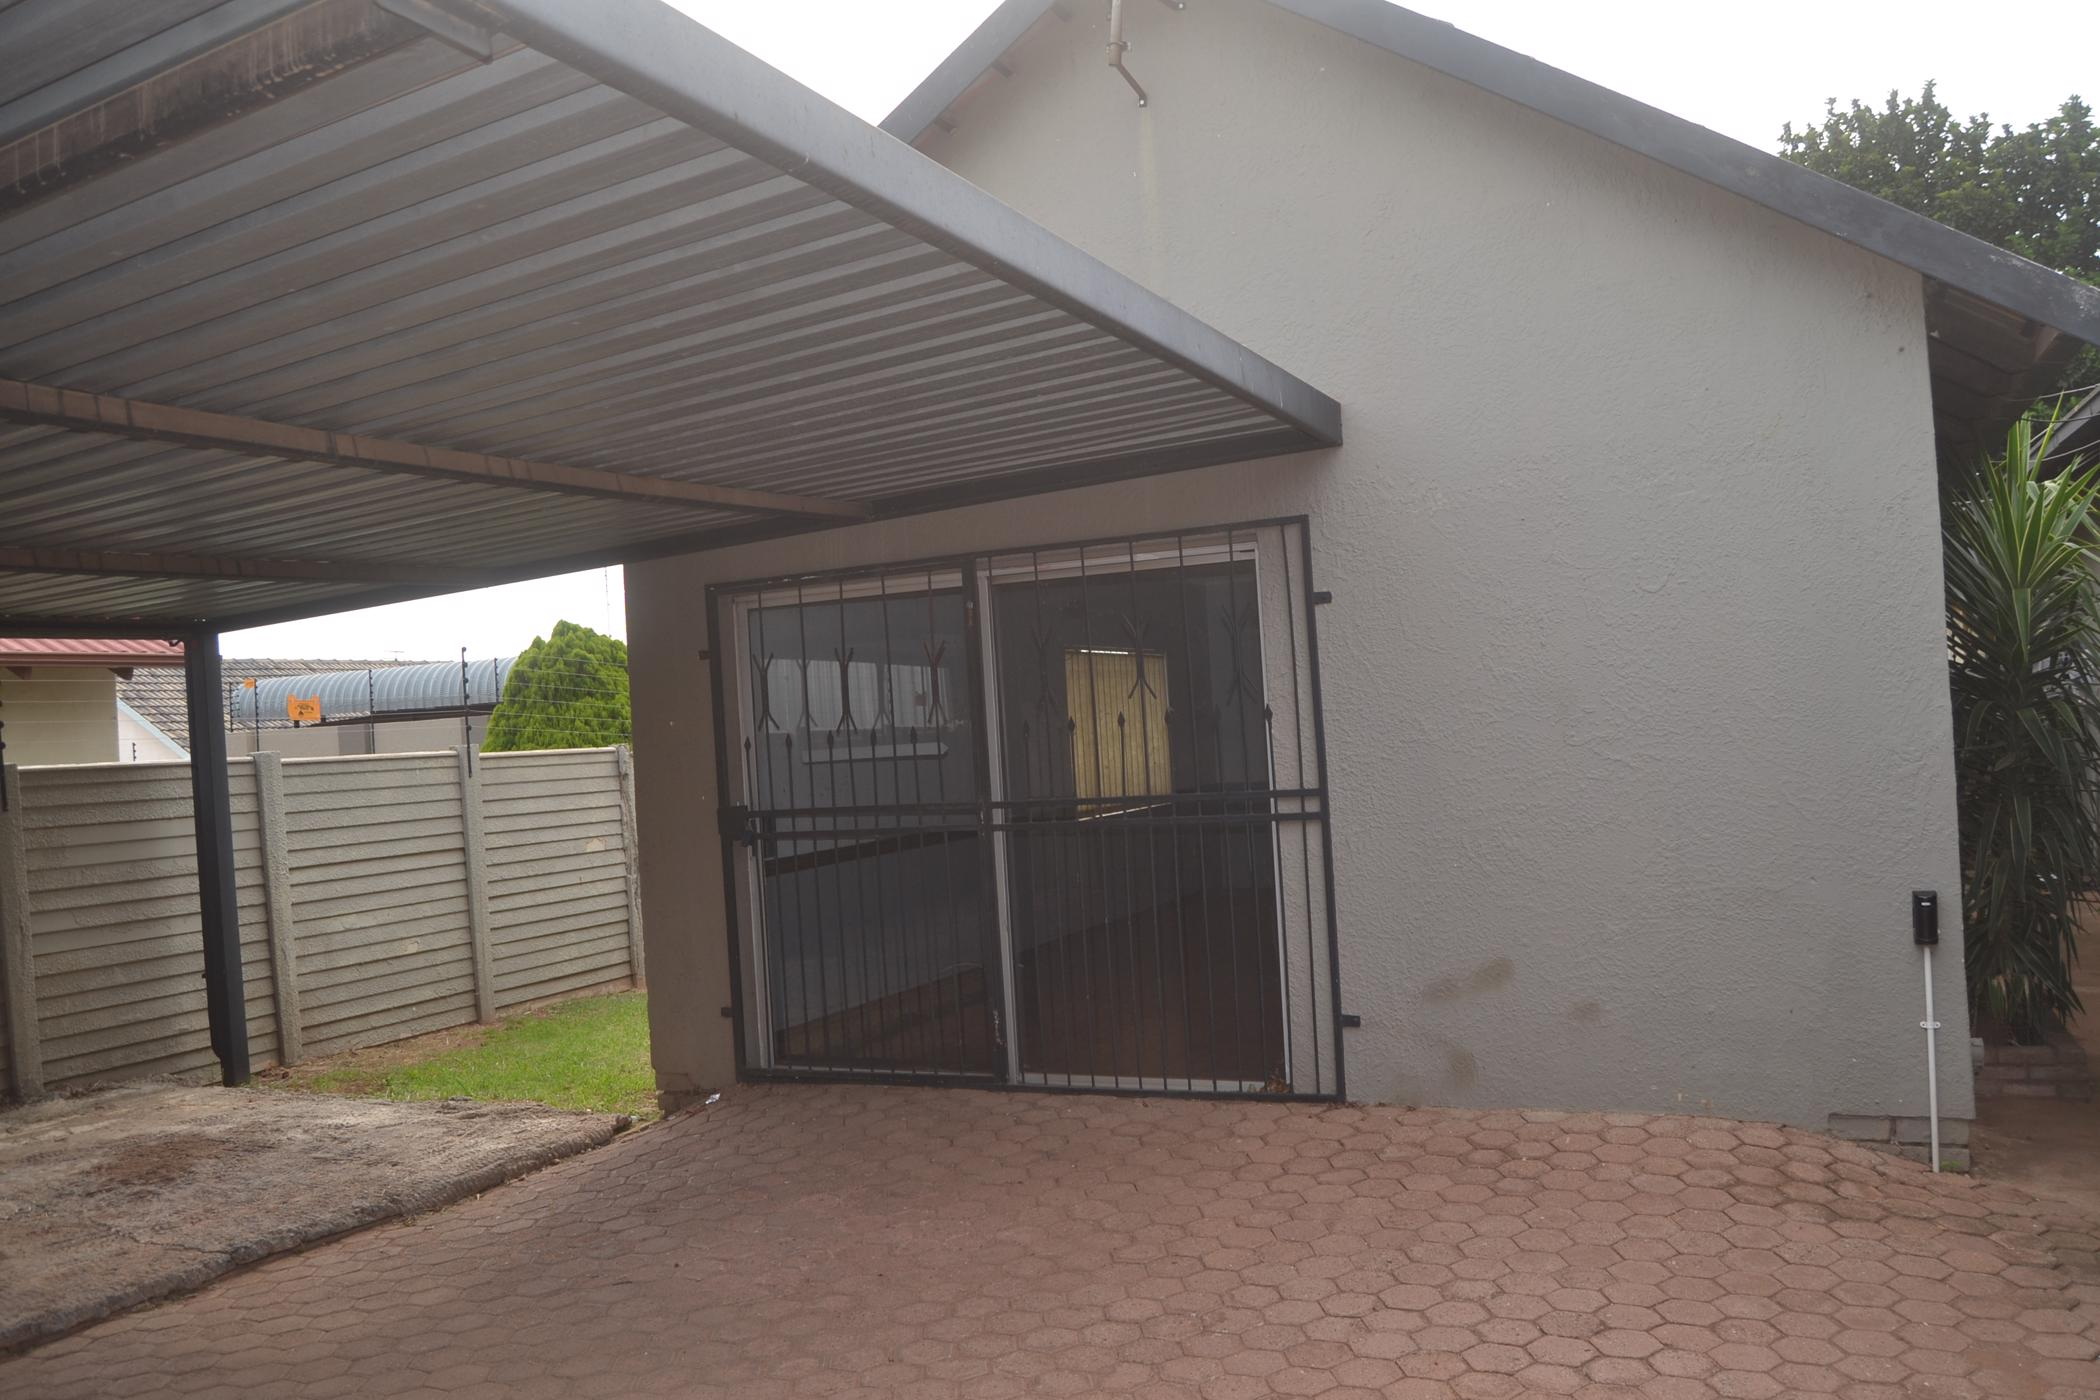 https://listing.pamgolding.co.za/images/properties/201902/1273424/H/1273424_H_1.jpg